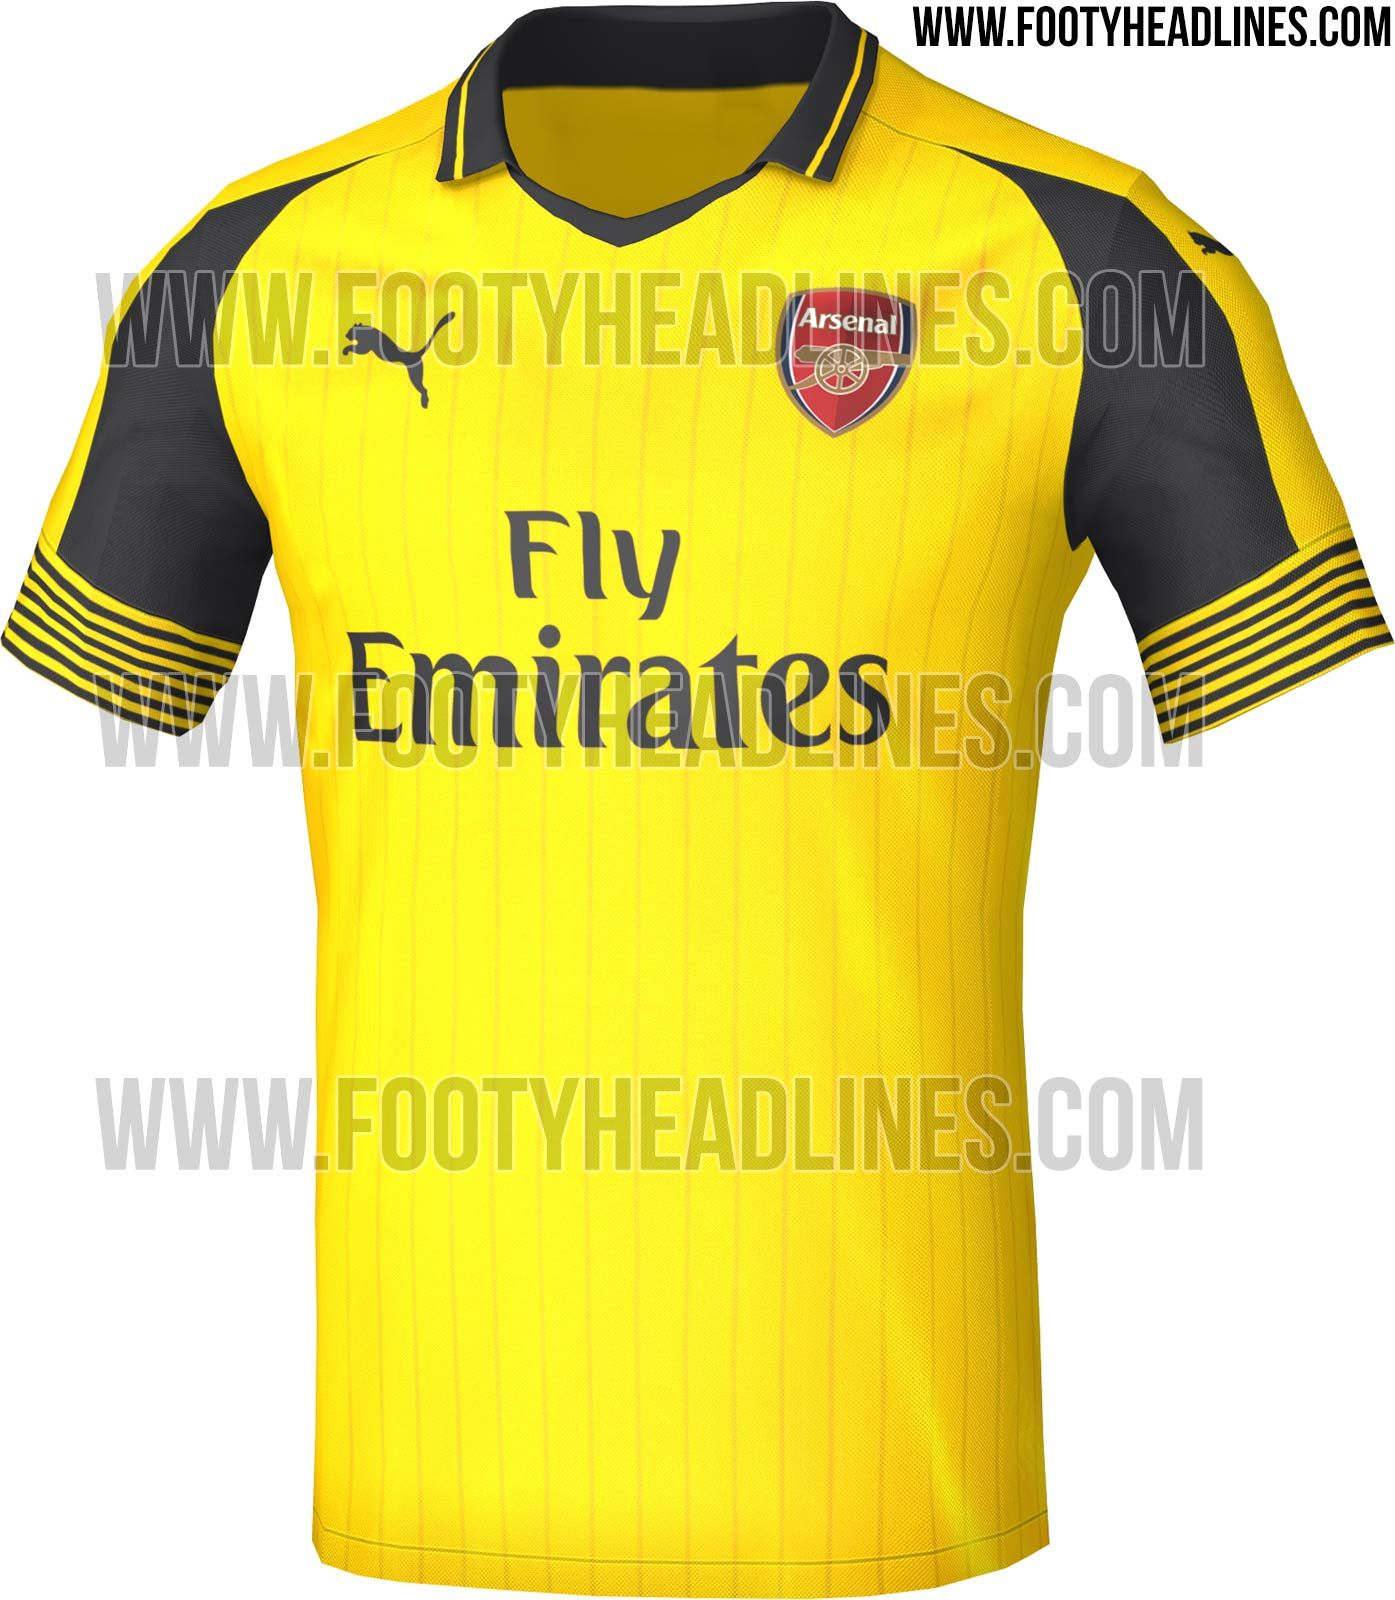 cefab715a Arsenal 16-17 Away Kit Leaked + Release Date Revealed